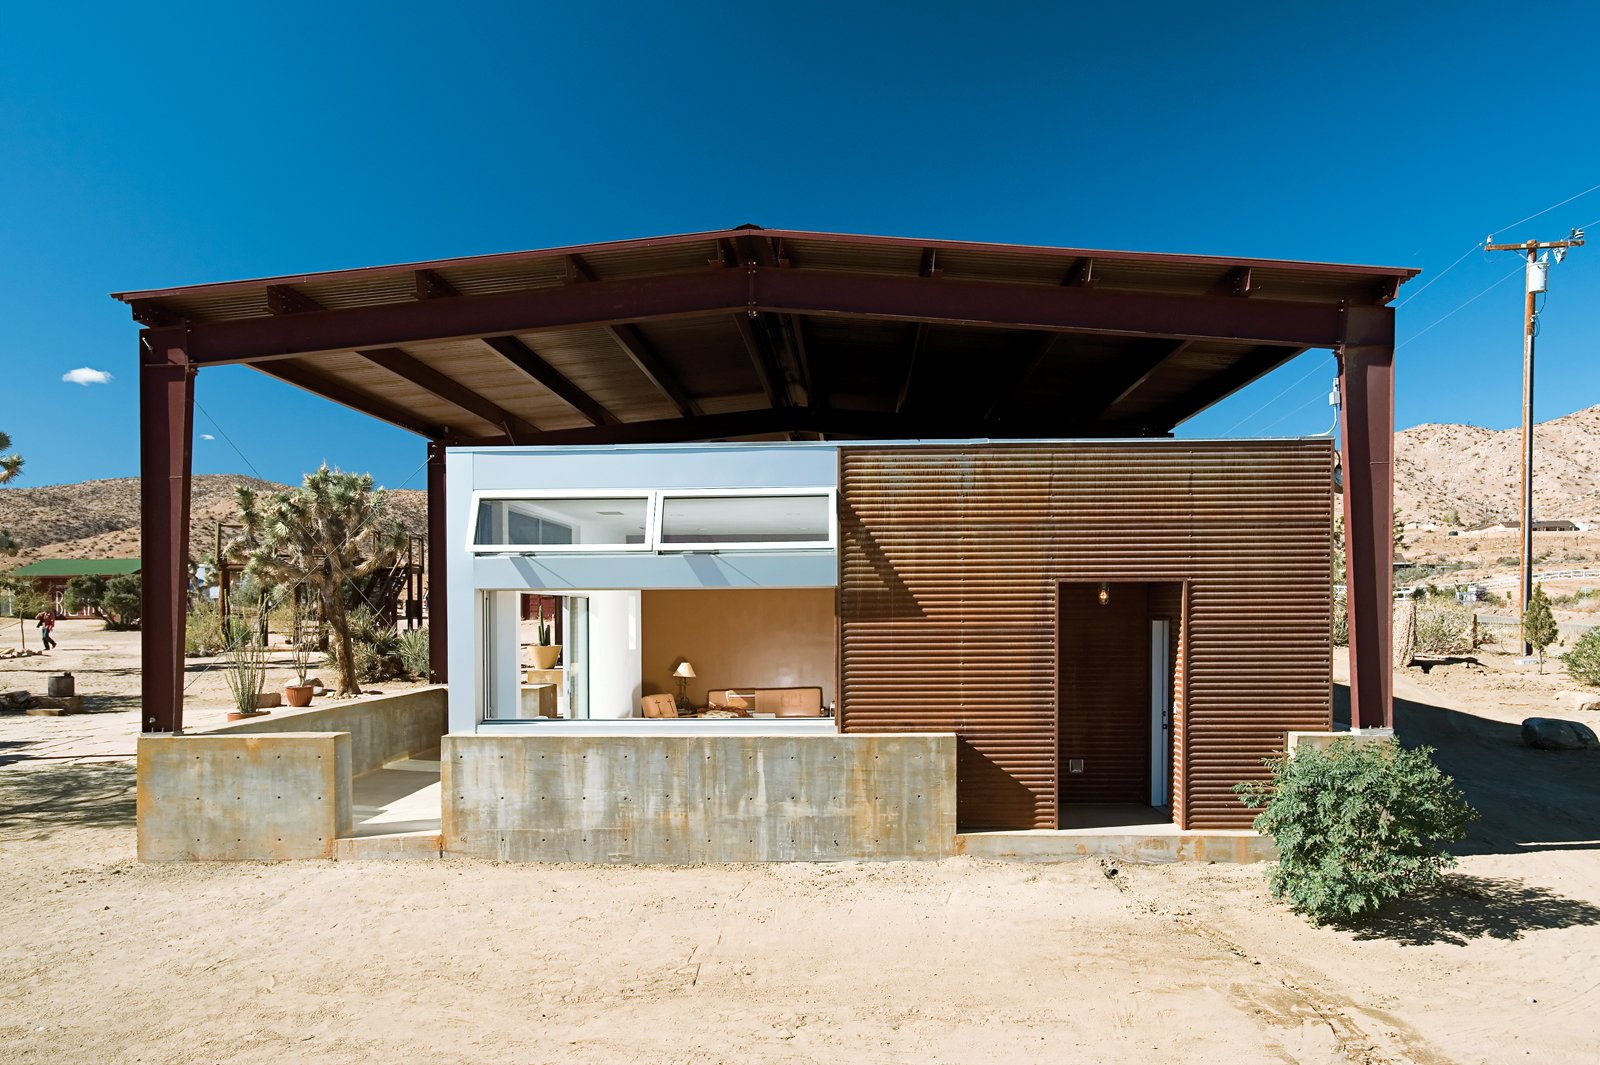 Shed & Studio and Living Space Room Type The rustic look of surfwear entrepreneur Jim Austin's home both stands out and also conforms with its rough-and-tumble surroundings in Pioneertown, California.  Photo 1 of 3 in Operation Desert Shed